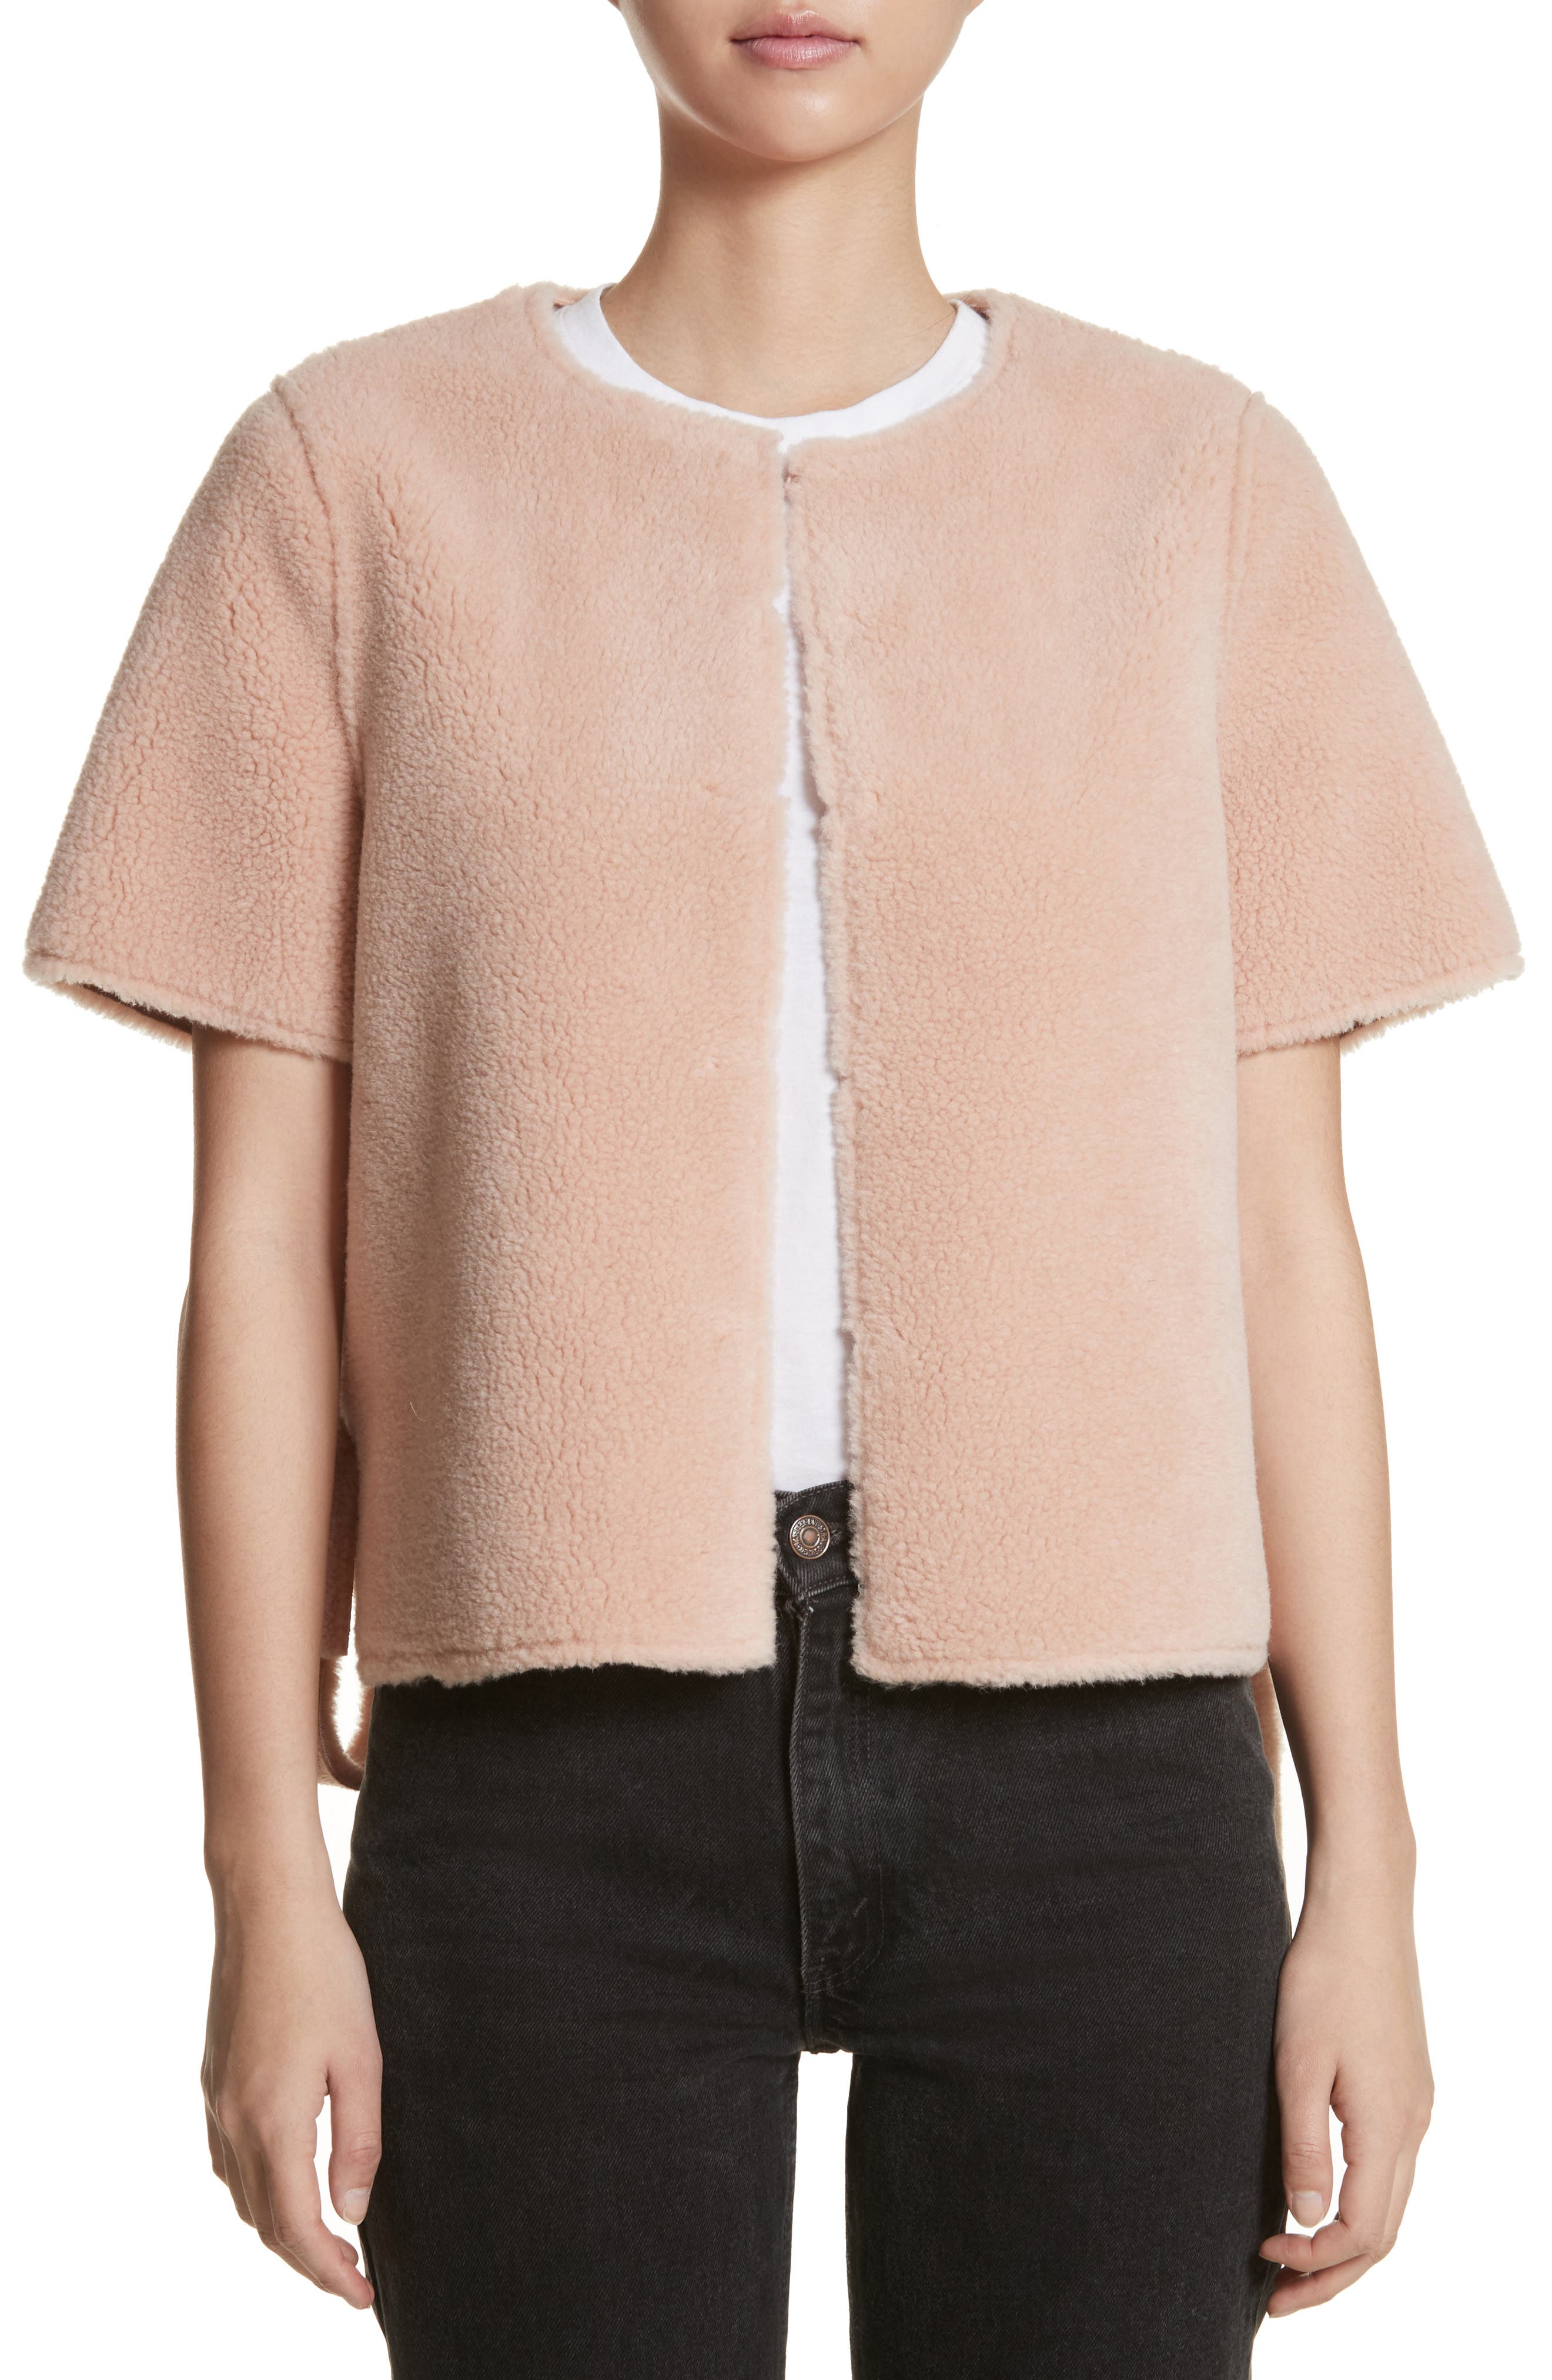 Alfonso Faux Shearling Side Tie Jacket,                         Main,                         color, Peach Beige